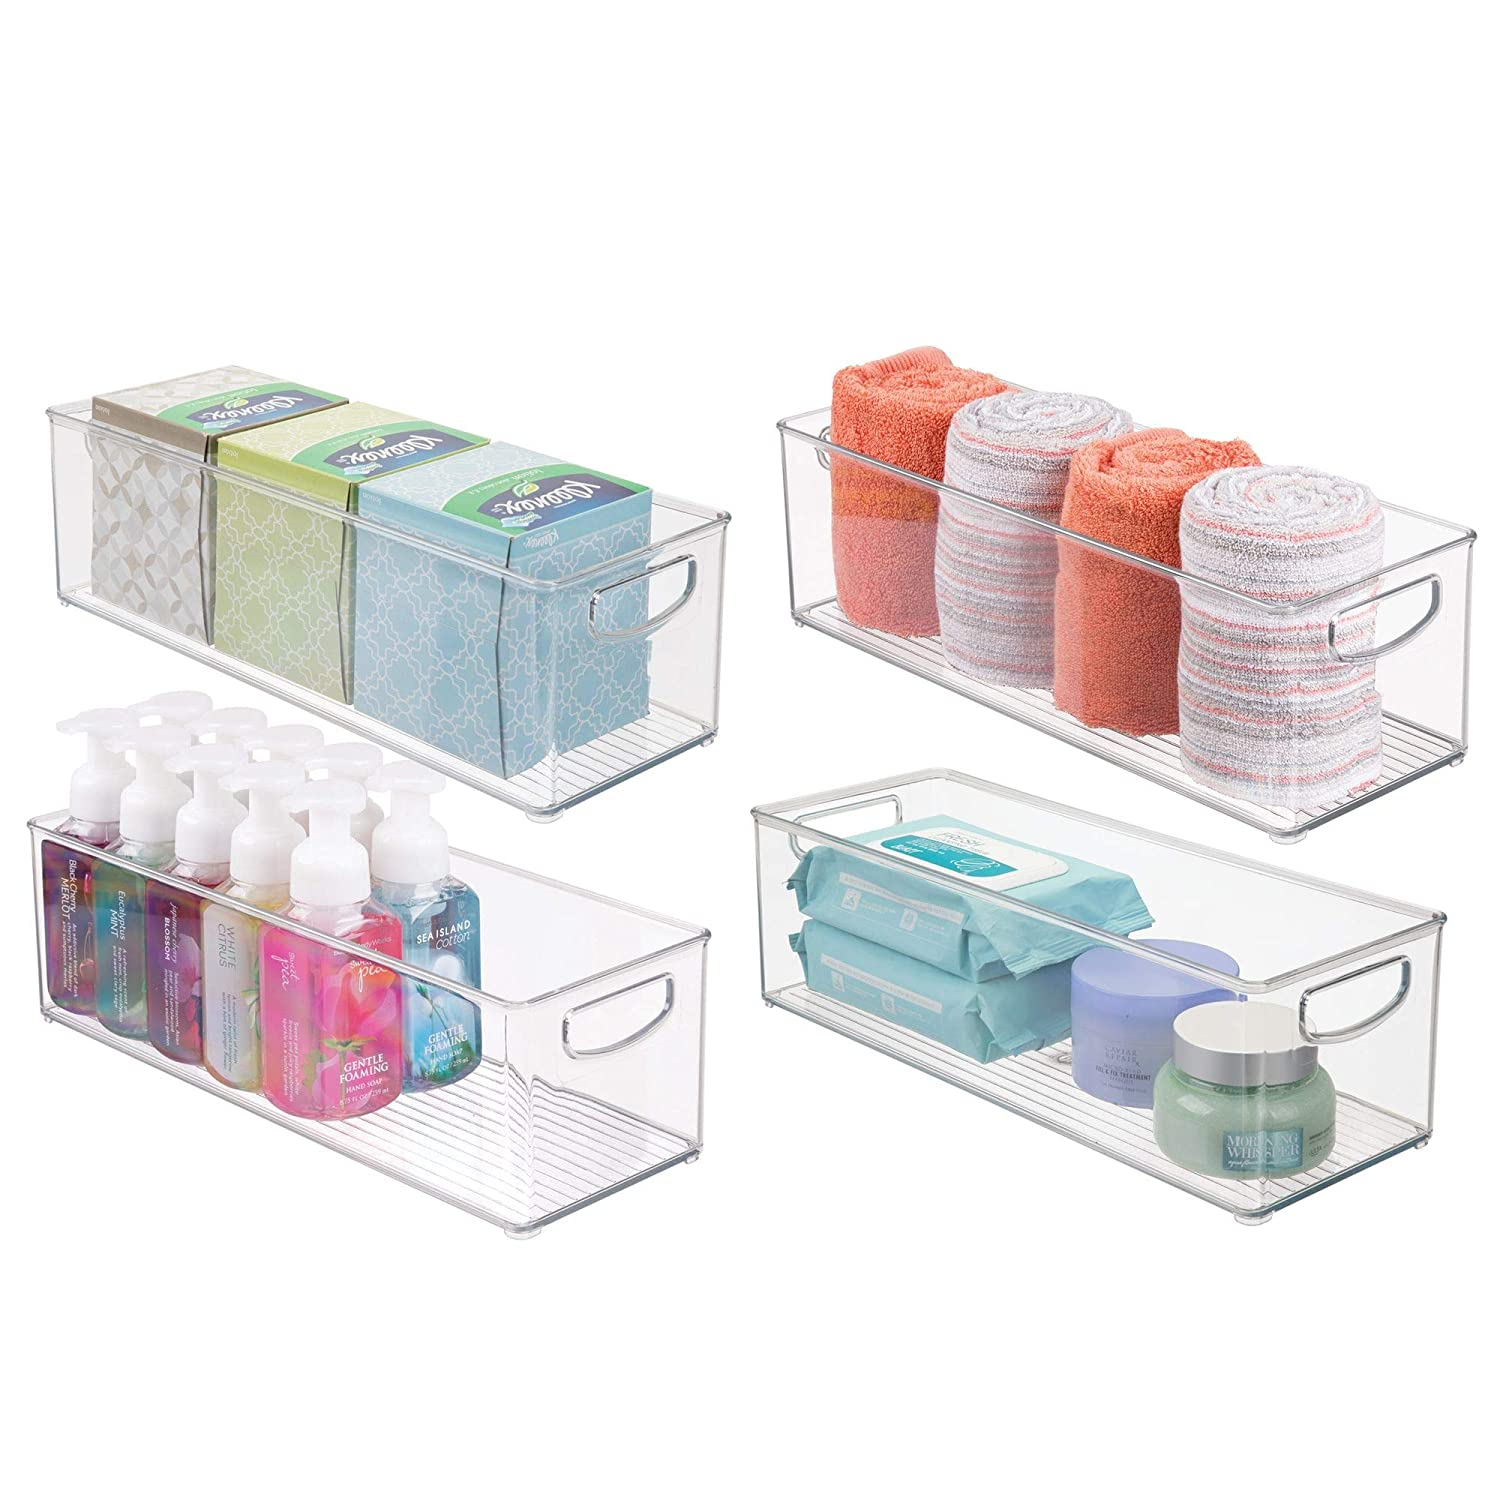 mDesign Storage Bin with Built-in Handles for Organizing Hand Soaps, Body Wash, Shampoos, Lotion, Conditioners, Hand Towels, Hair Accessories, Body Spray, Mouthwash - 16